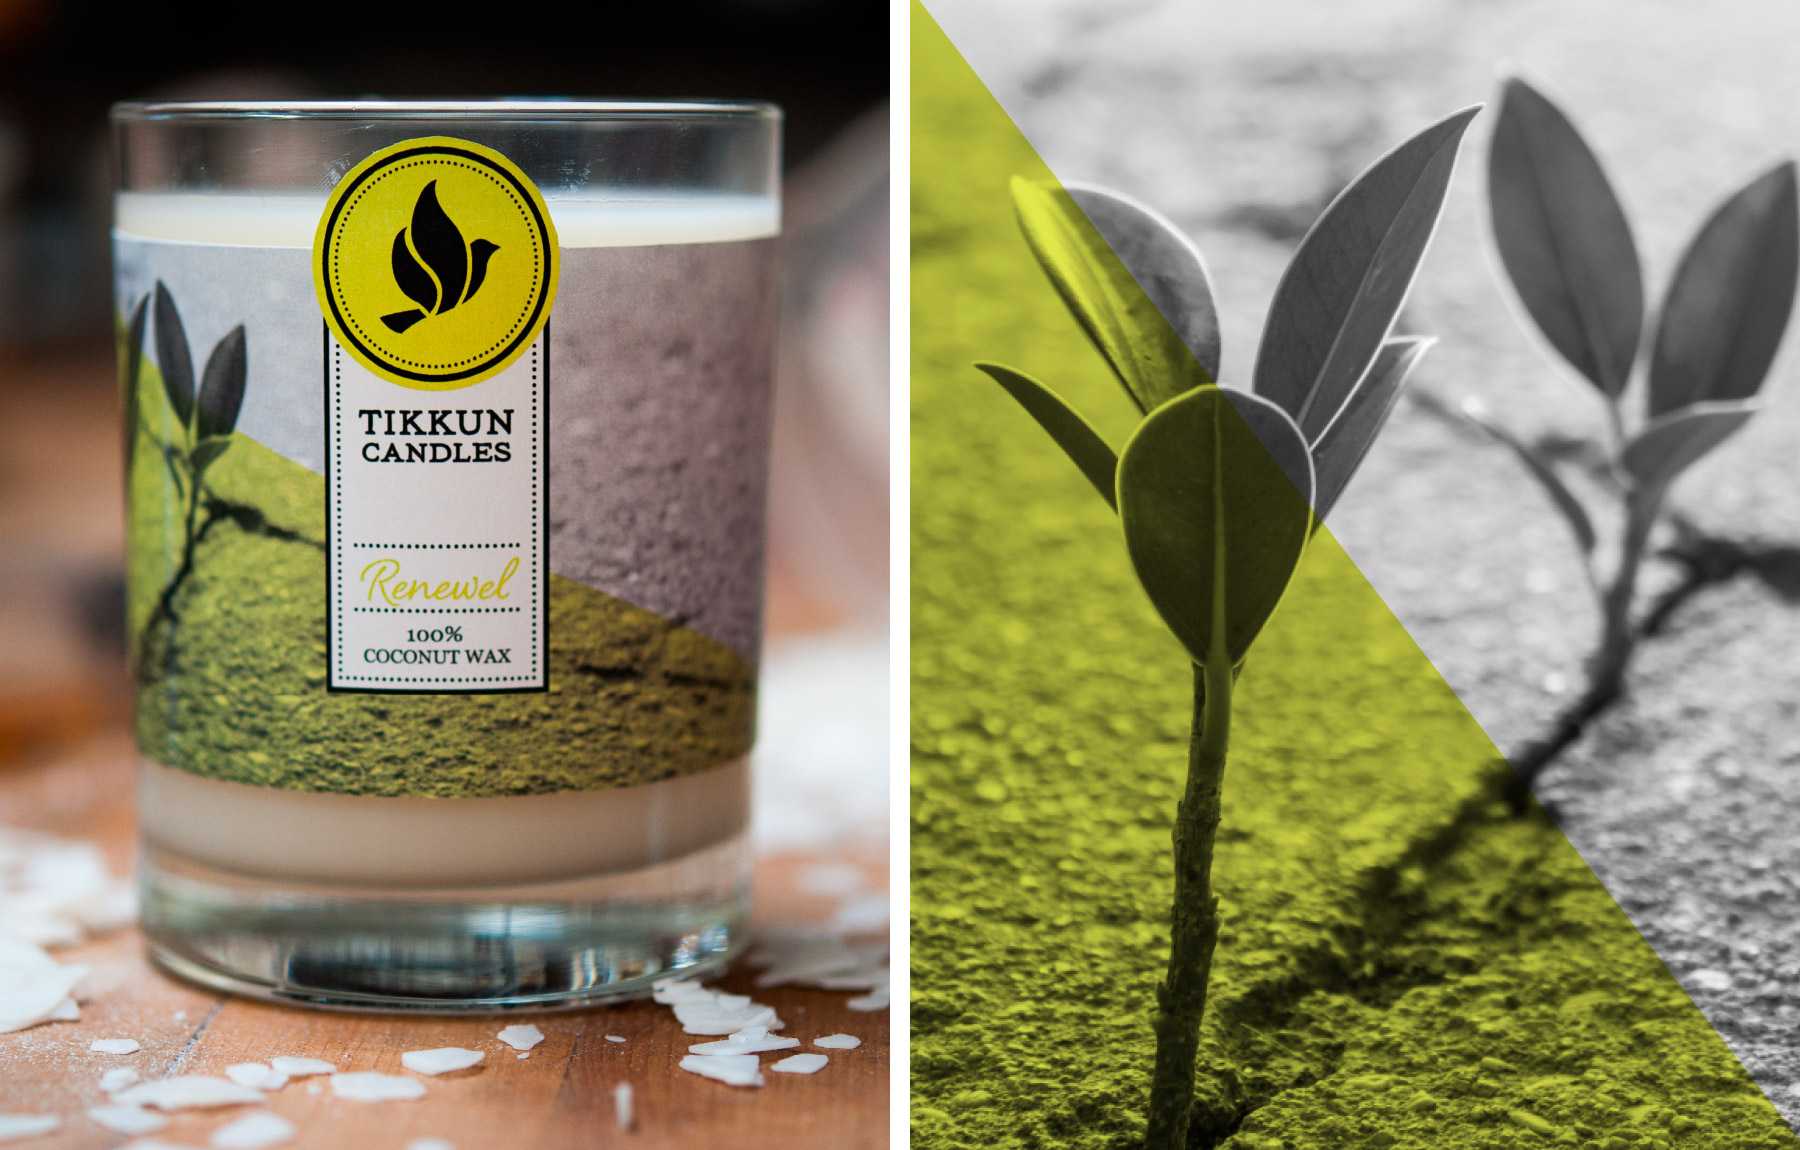 Renewel candle packaging design